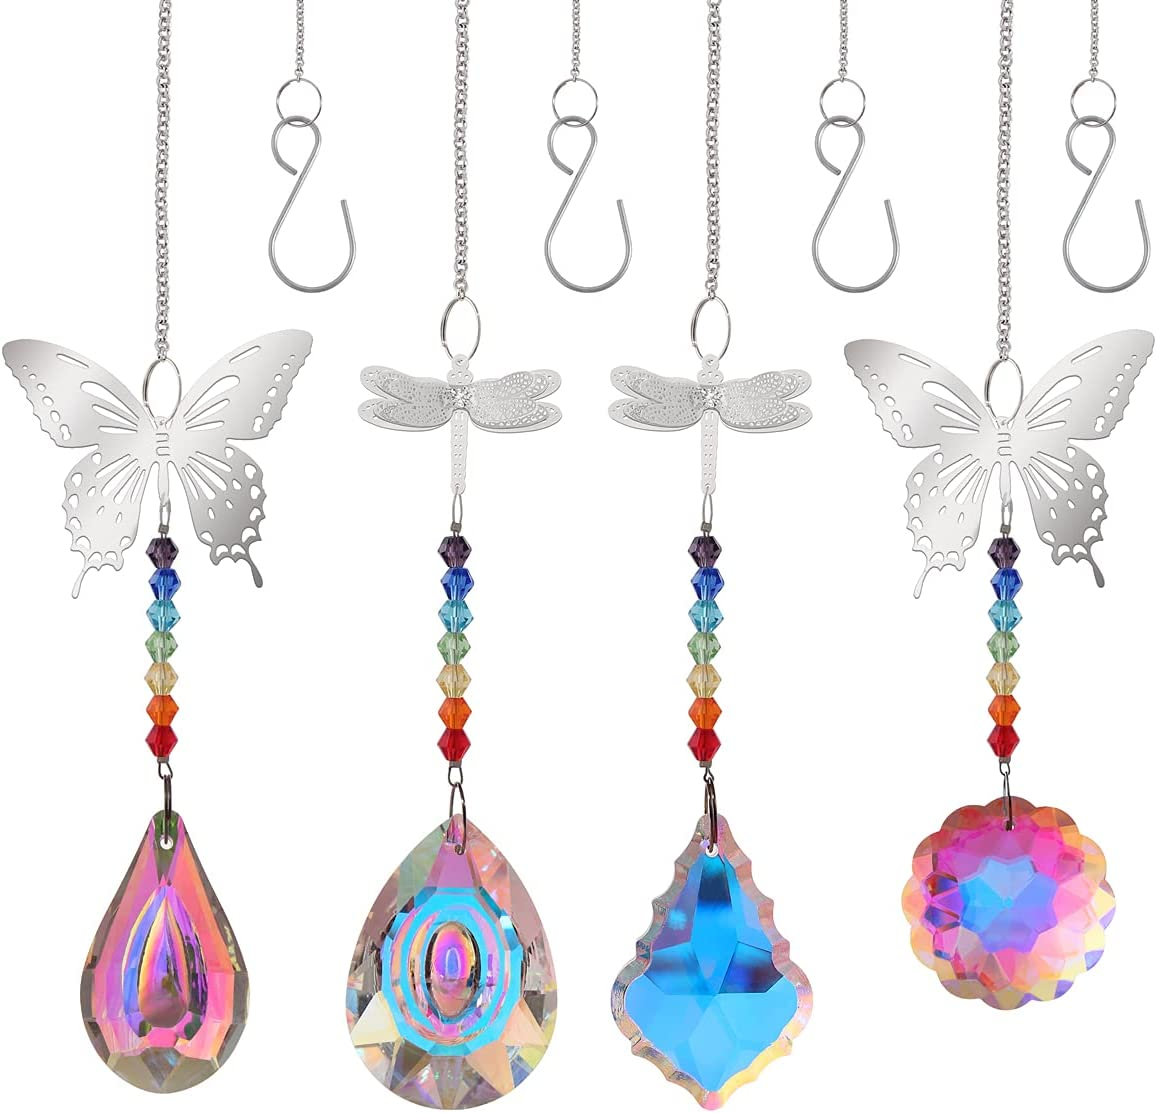 4PCS Crystal Sun Catcher, STINO Hanging Prism Suncatcher Drop Crystals Indoor Window Decorations Wall Glass Décor, Rainbow Maker for Car, Kitchen, Balcony, Room, Family Creates Gift